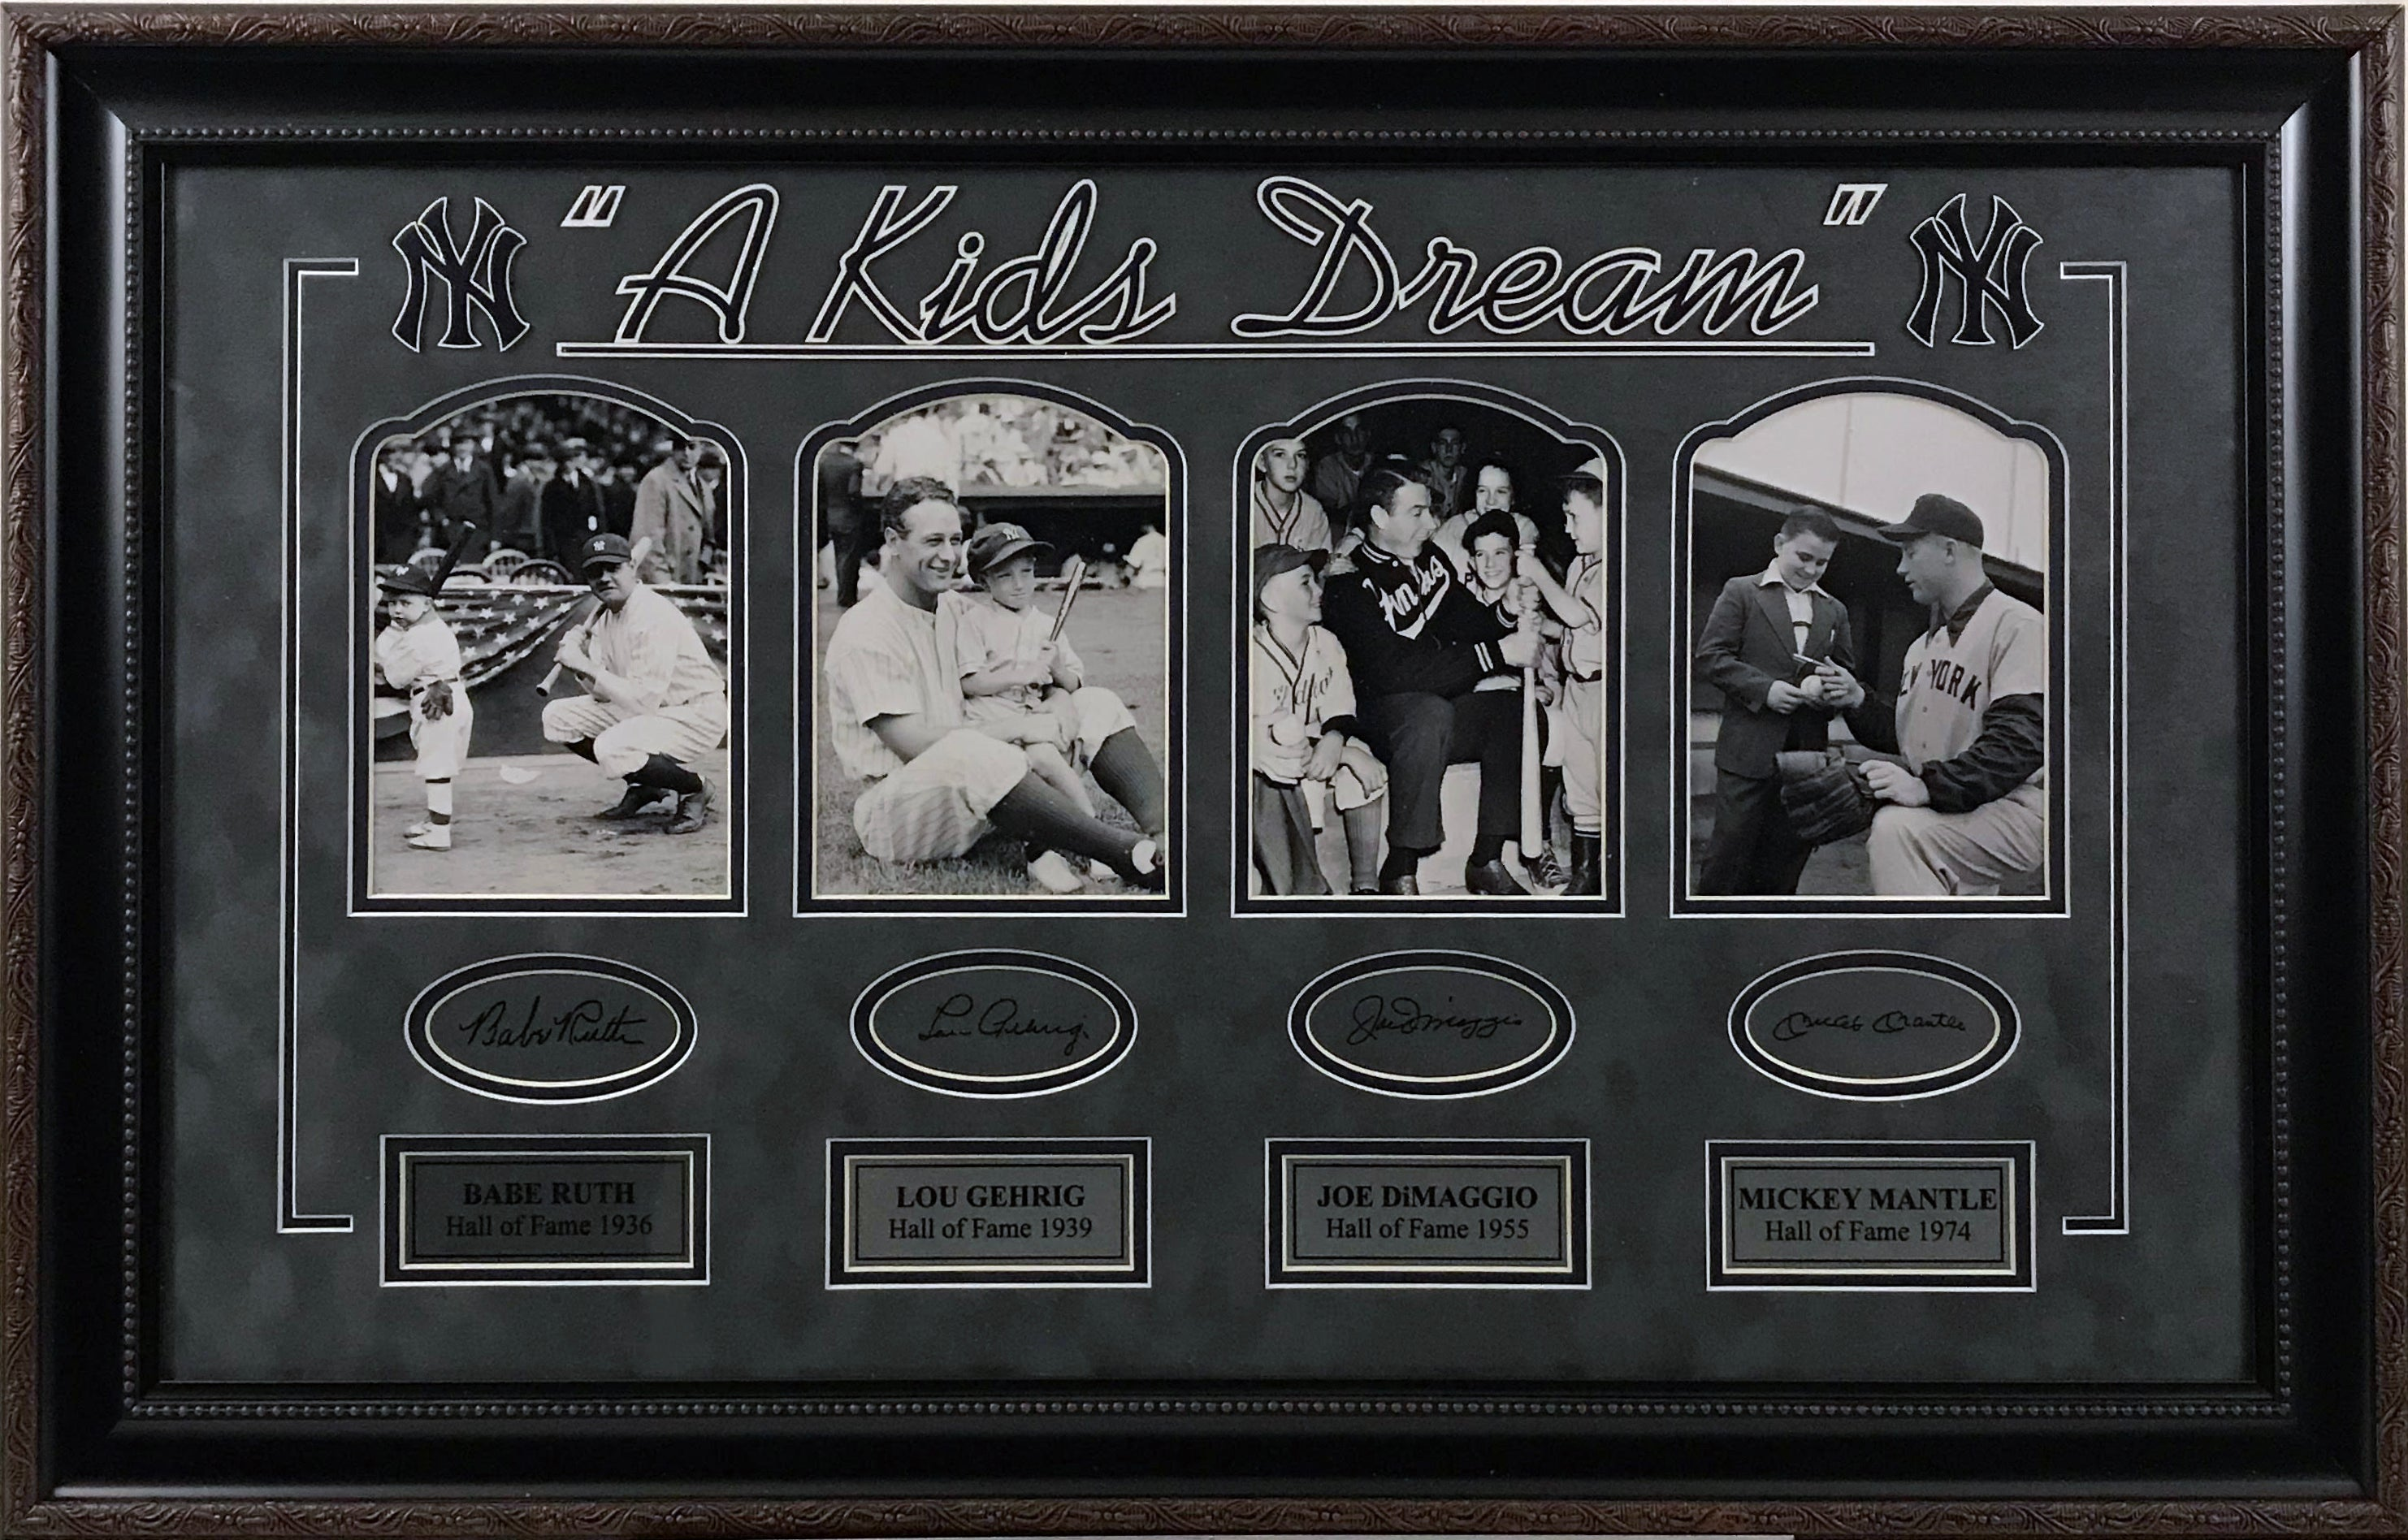 A Kids Dream - Gehrig, Ruth, DiMaggio and Mantle Photo Collage Laser Signatures